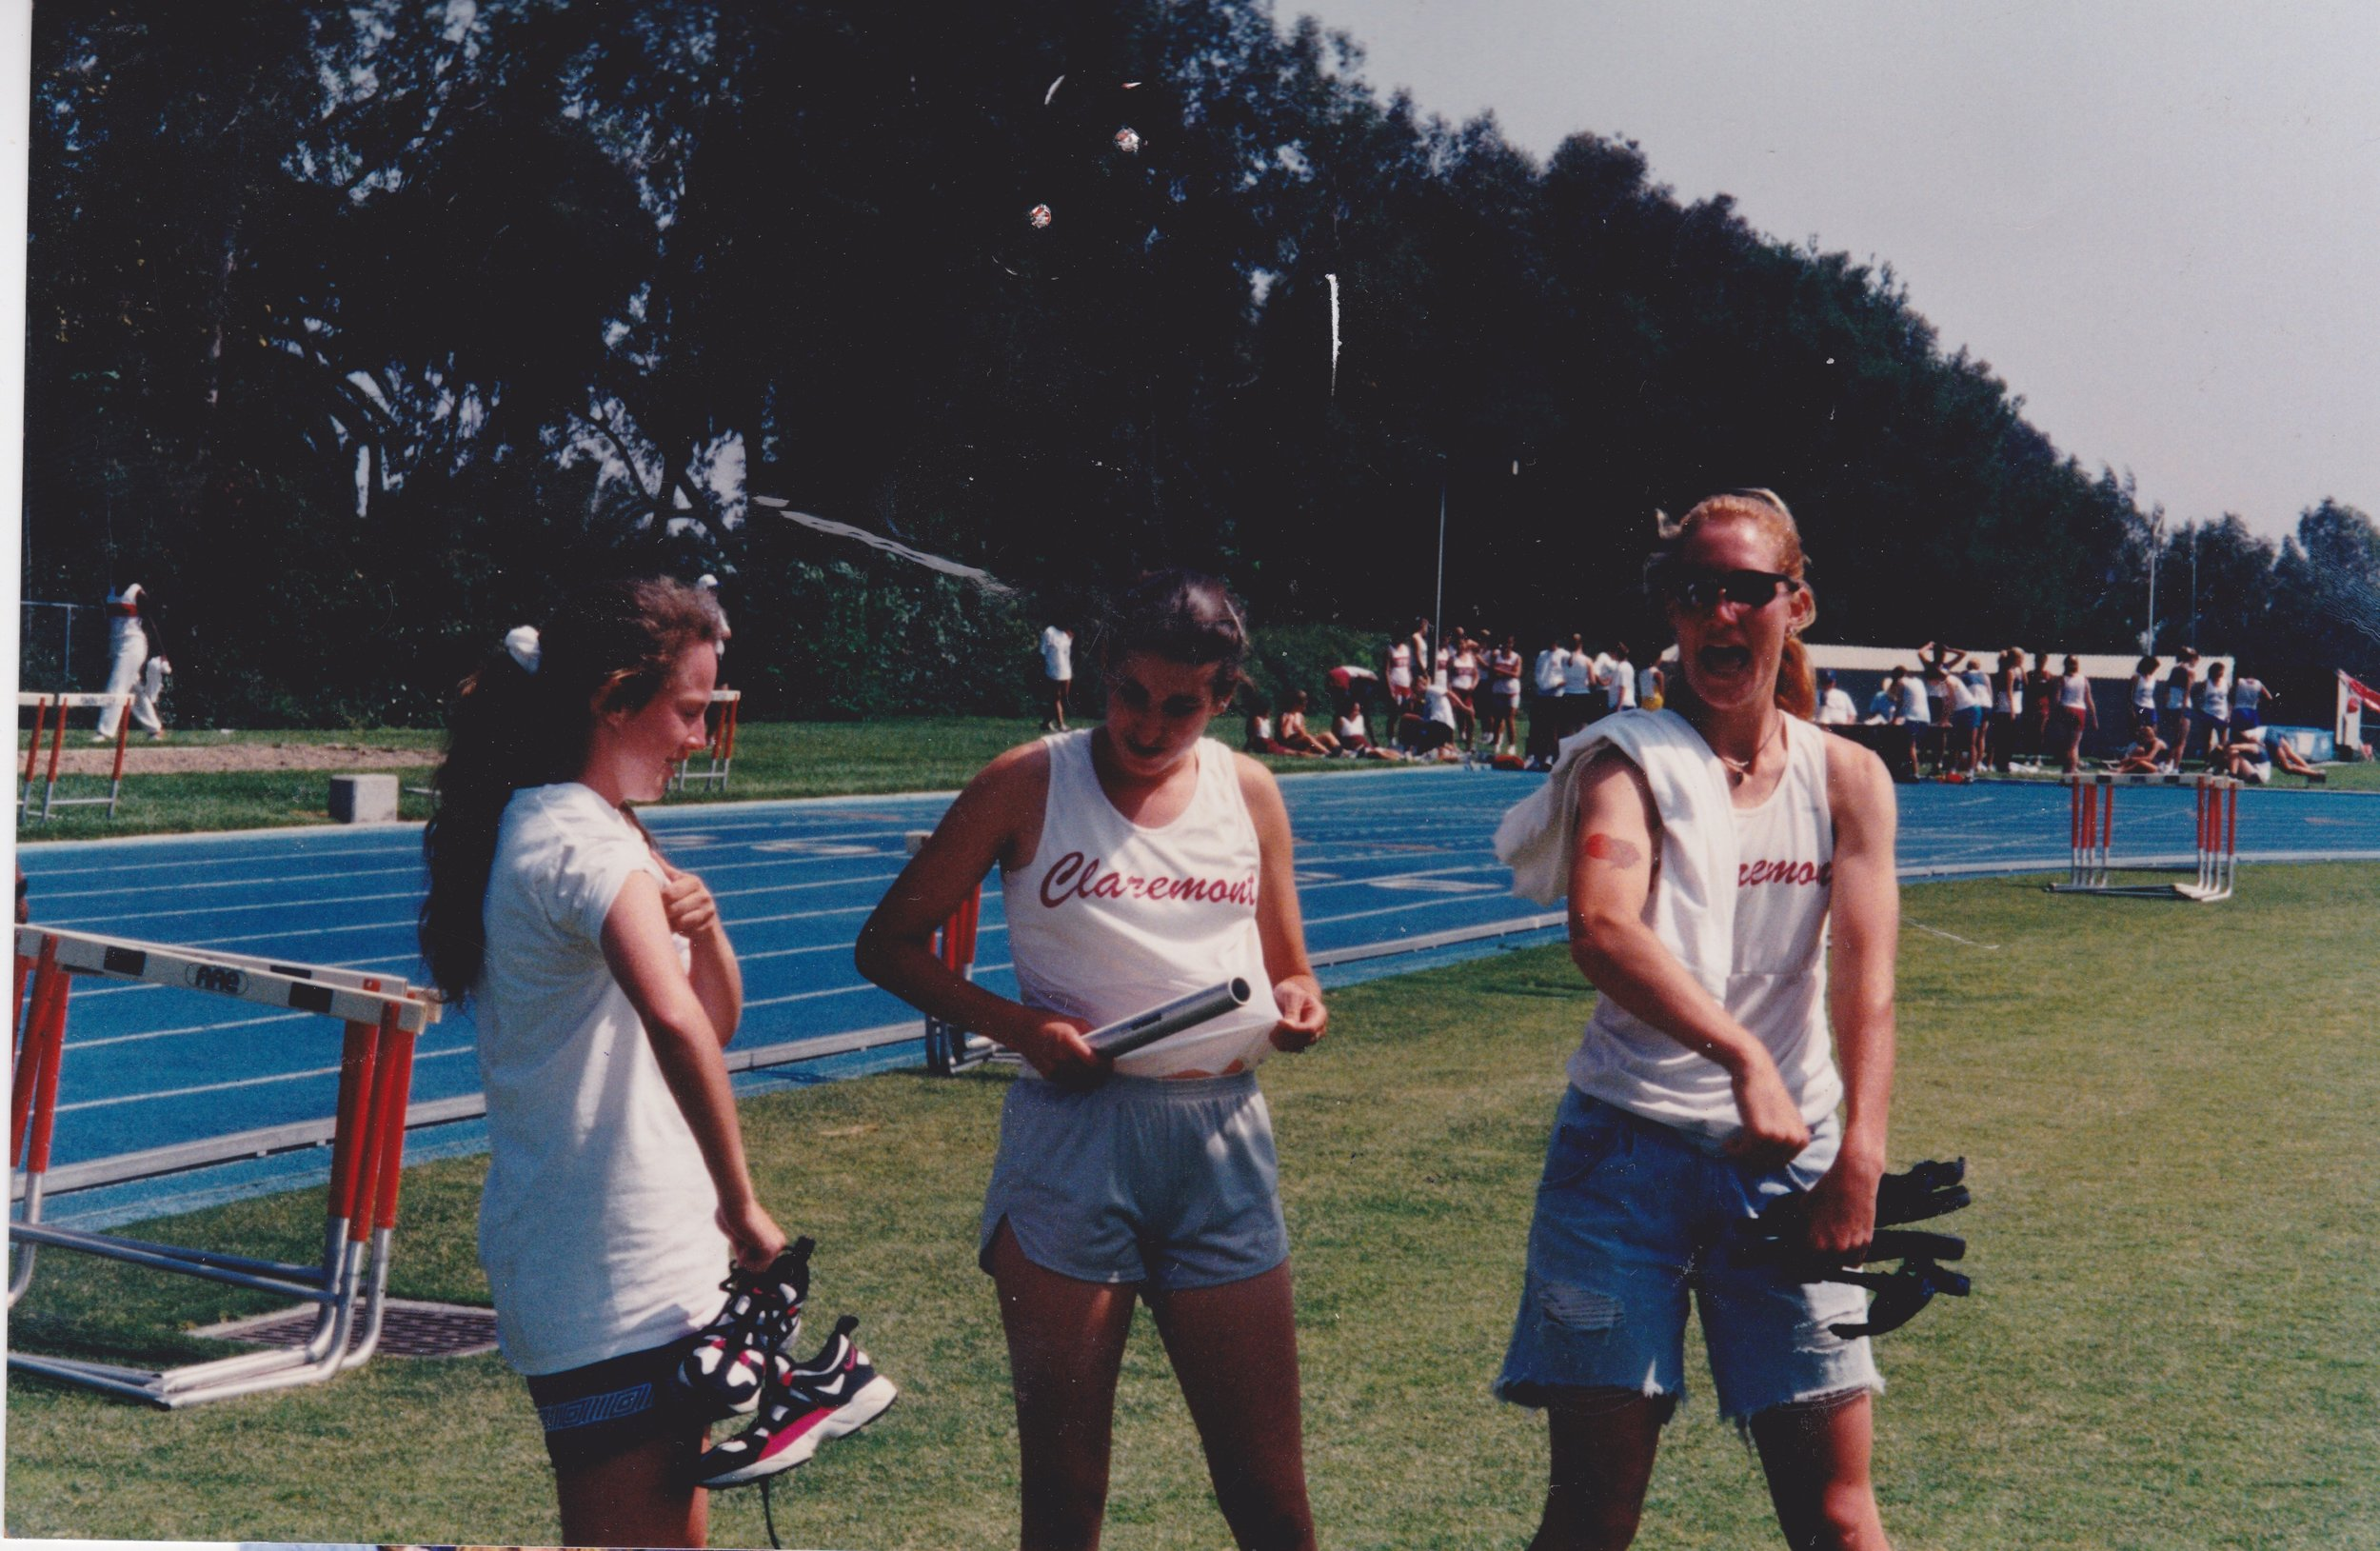 Pre-relay race at Pomona College,Spring 1996.